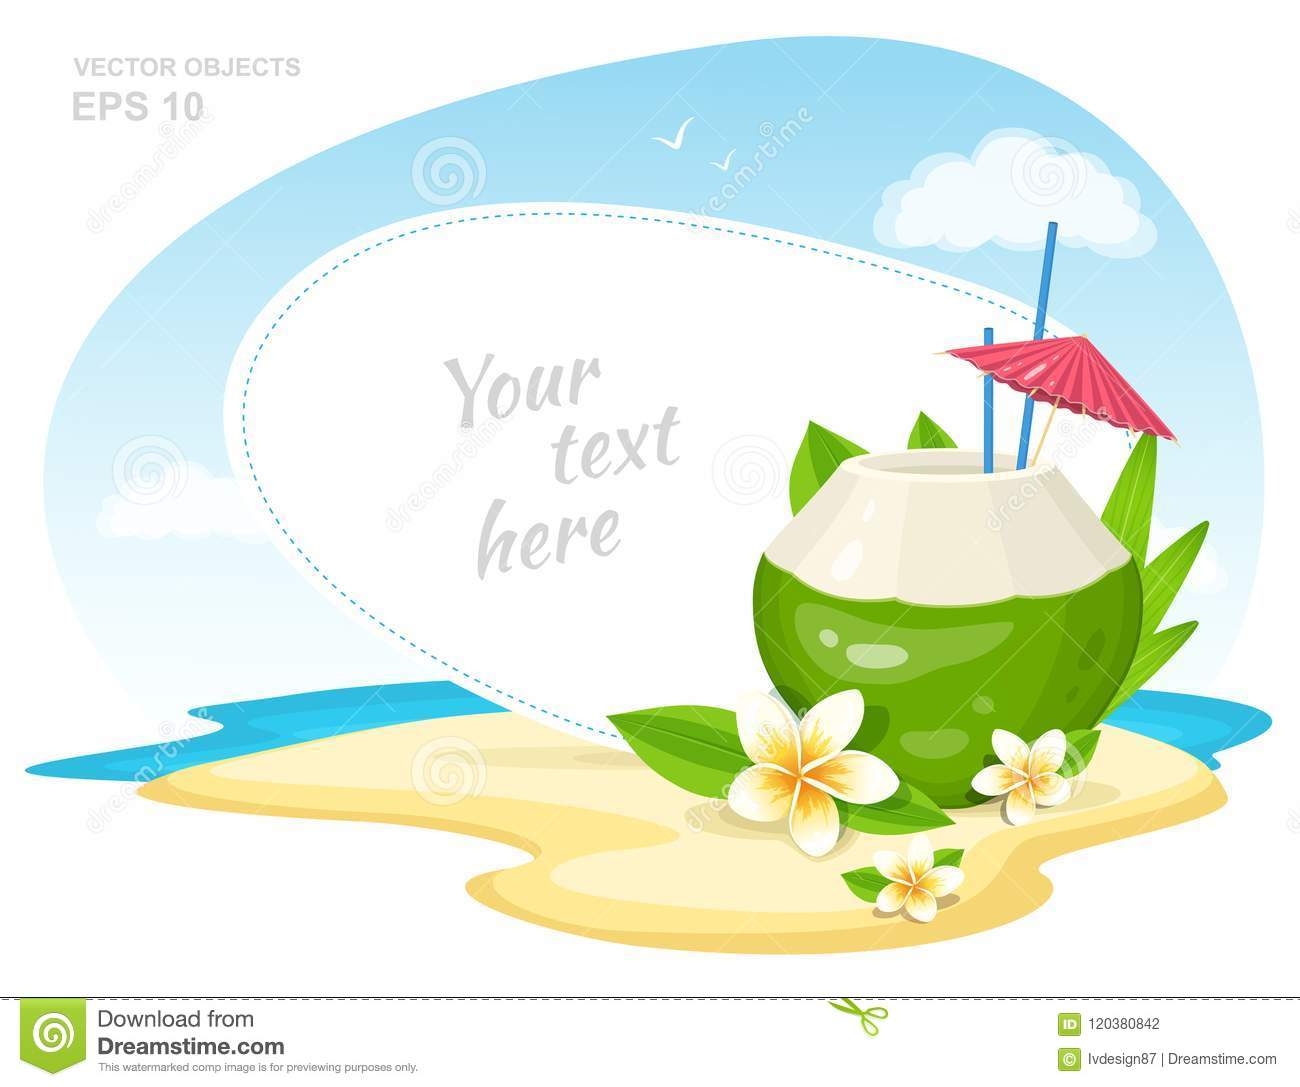 Fresh Coconut Cocktail with Plumeria Flowers, straws and Umbrella on the Island Beach. Summer Time Vacation Attribute. Vector